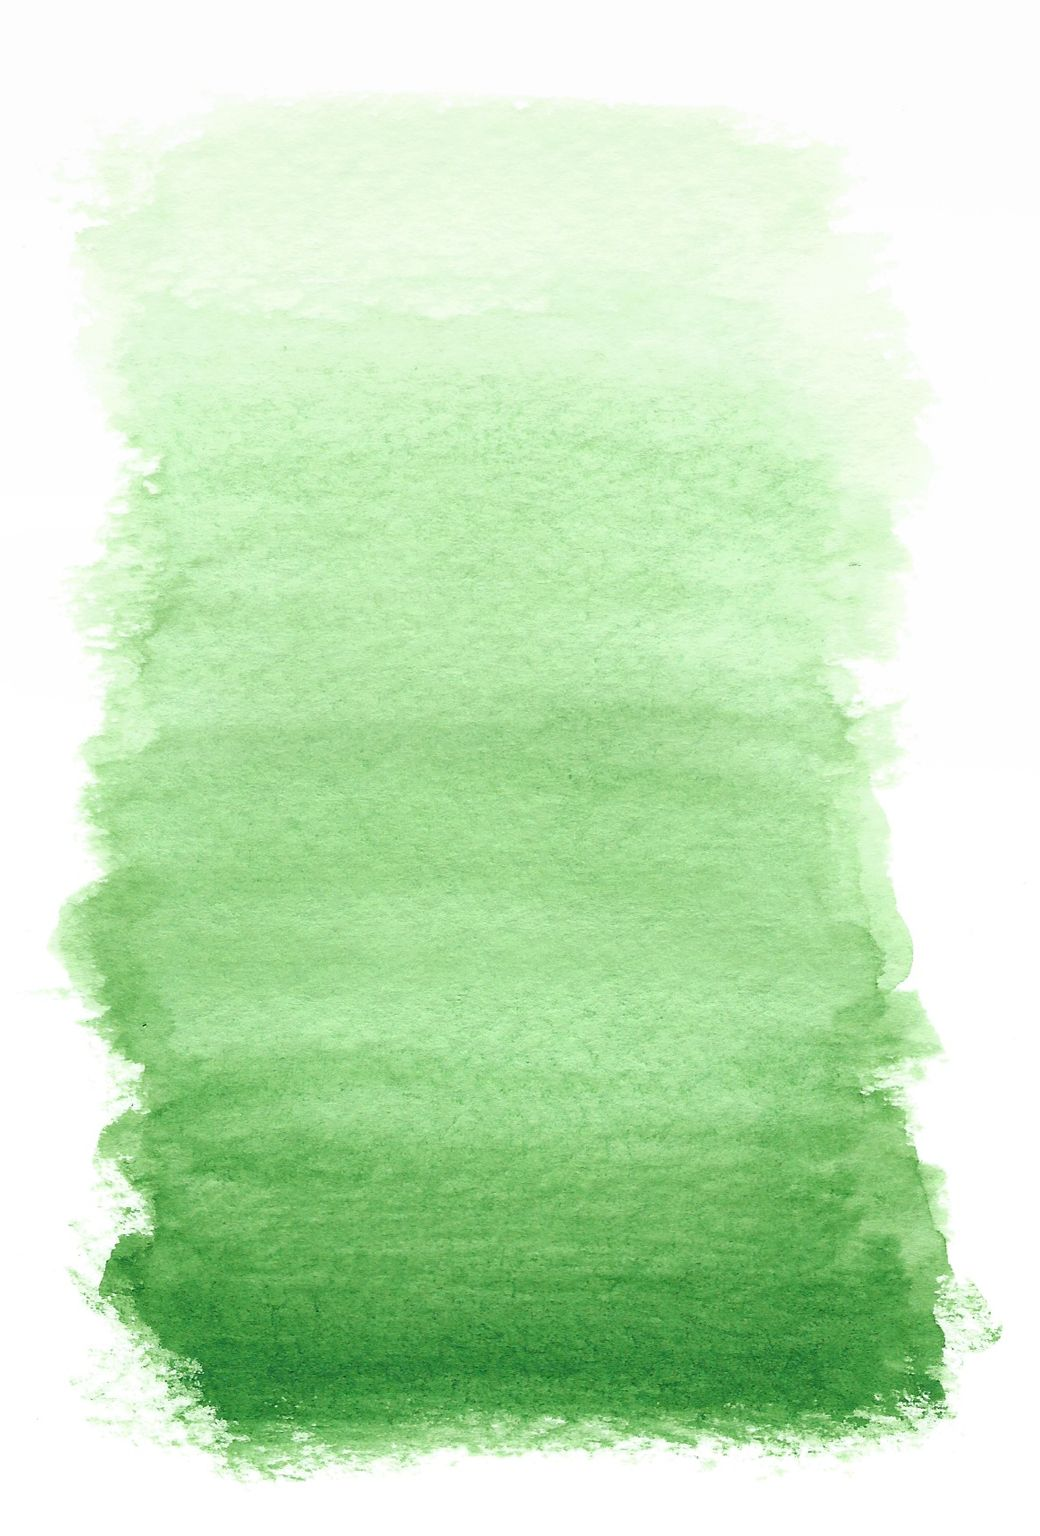 Green Watercolor Iphone Wallpaper Panpins Green Watercolor